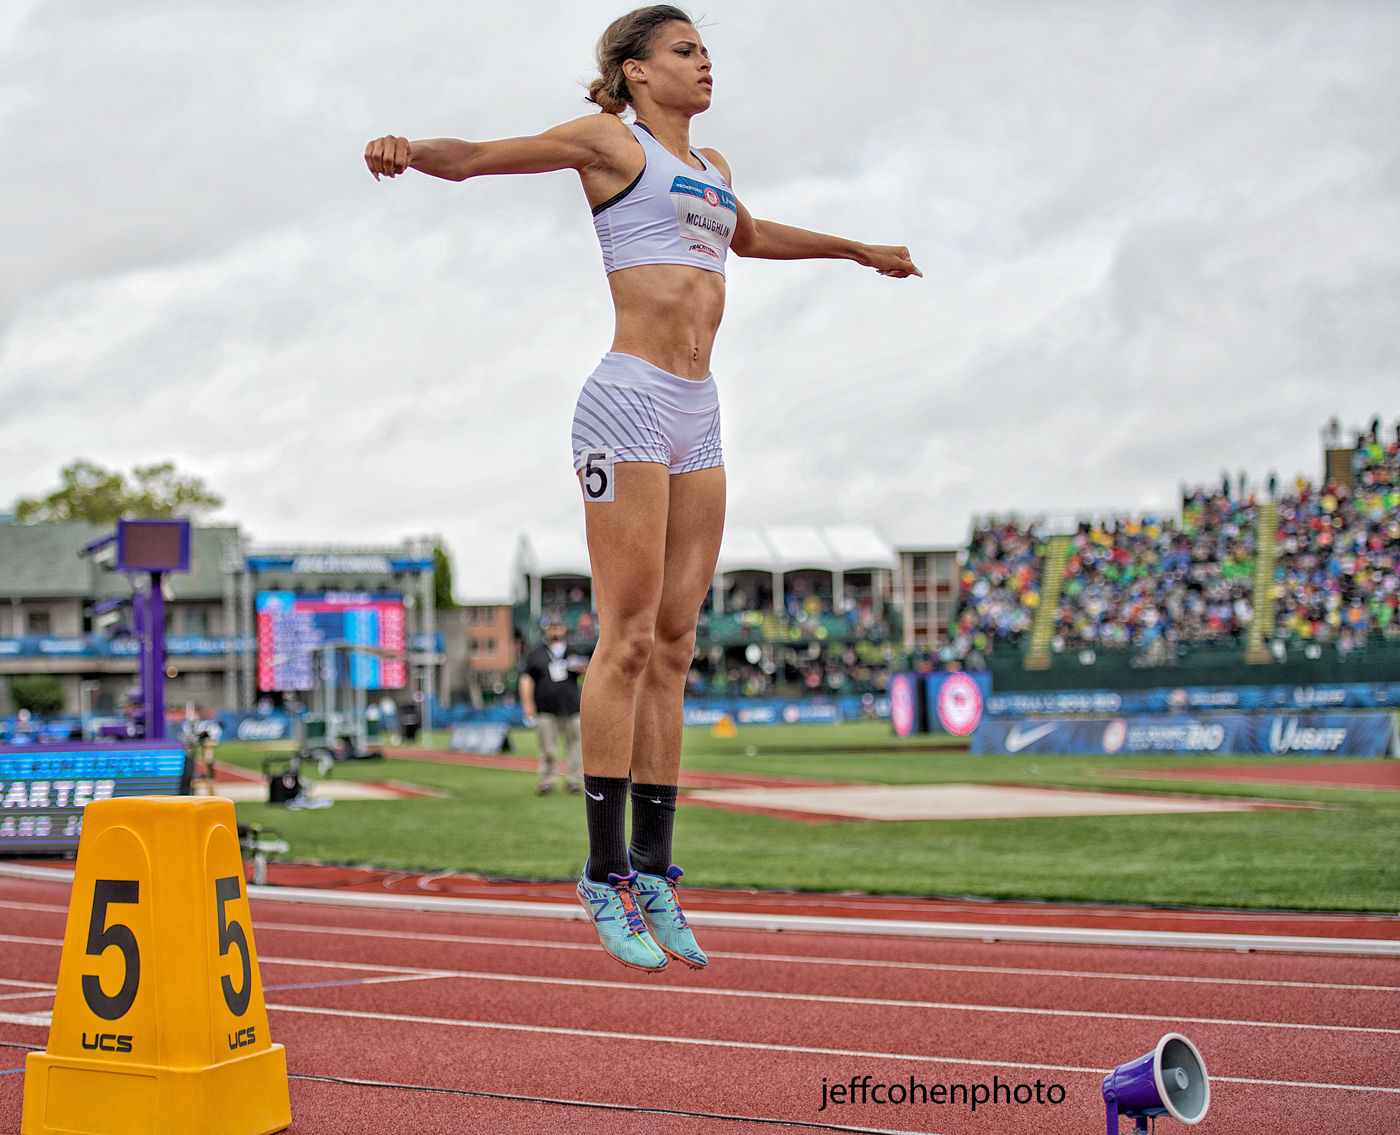 1r2016_oly_trials_day_9_sydney_mclaughlin_400hw_jump_jeff_cohen_photo_28066_web.jpg